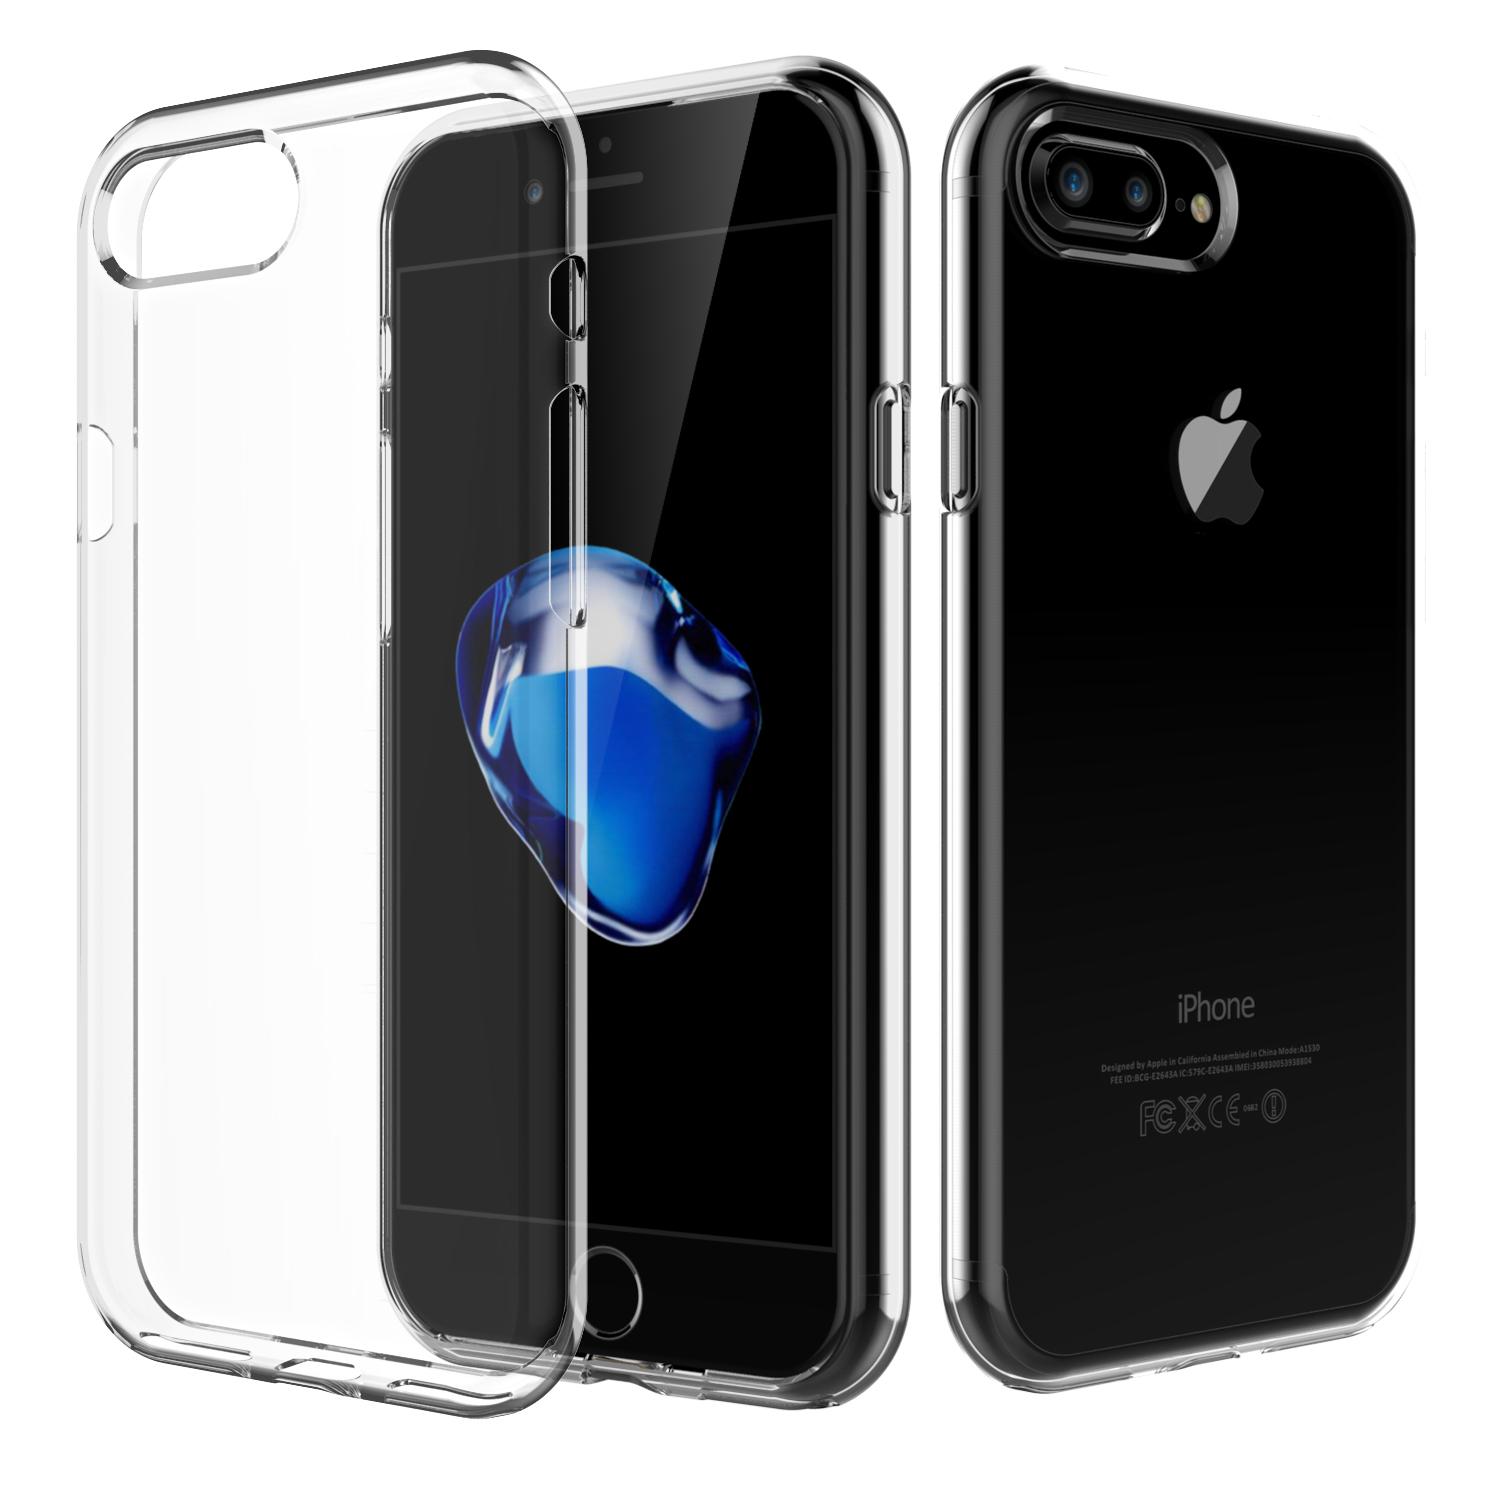 For iPhone 7 Plus, Shamo's [Crystal Clear] Case [Shock Absorption] Cover TPU Rubber Gel [Anti Scratch] Transparent Clear Back, Soft Silicone, Screen Raised Lip Protection, Impact Resistant, Model 2